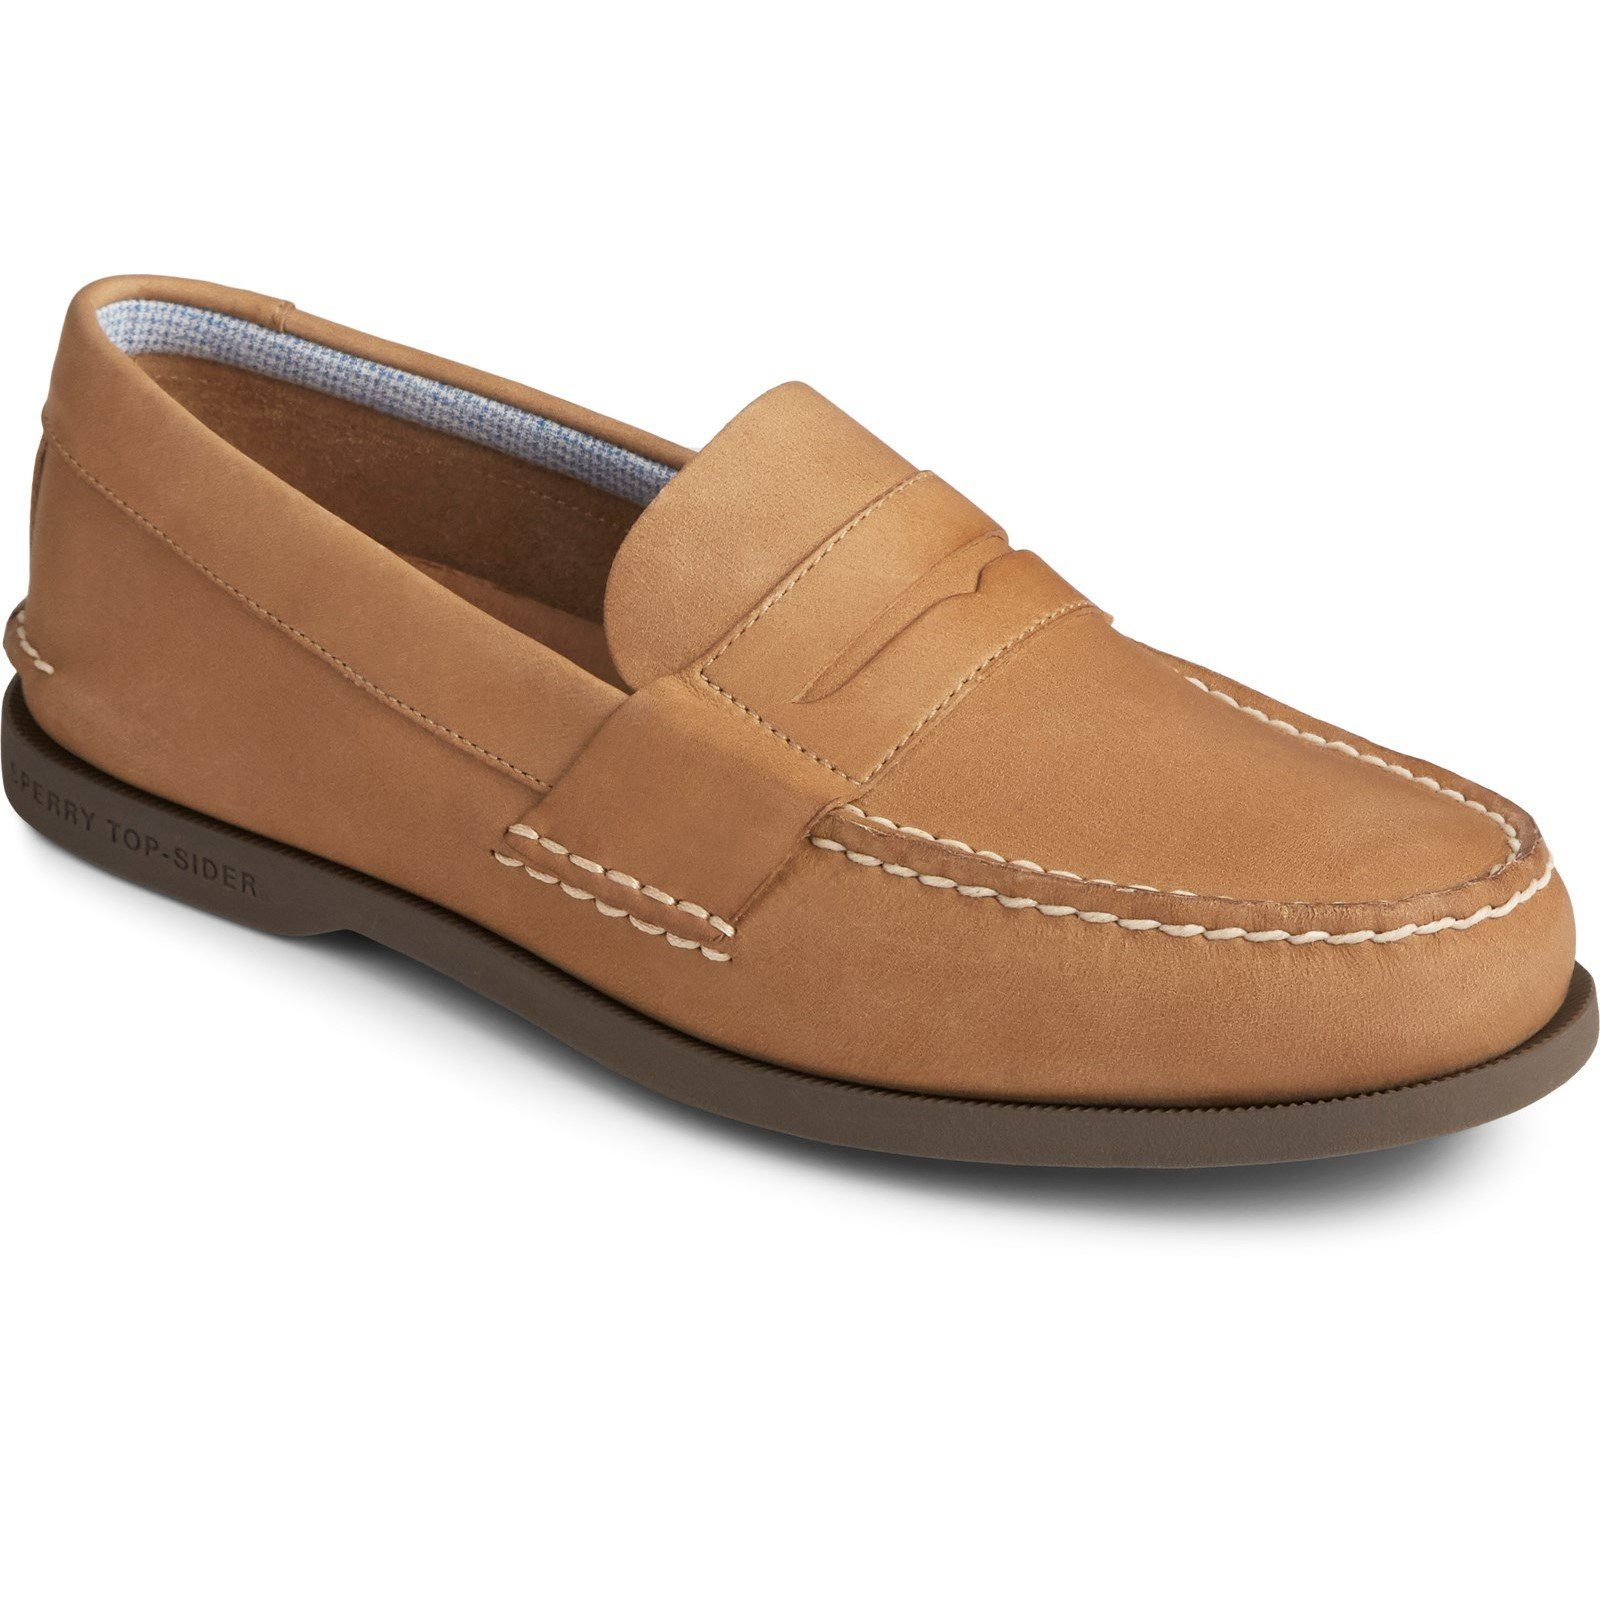 Sperry Men's Authentic Original Penny Loafer Various Colours 31733 - Sahara 7